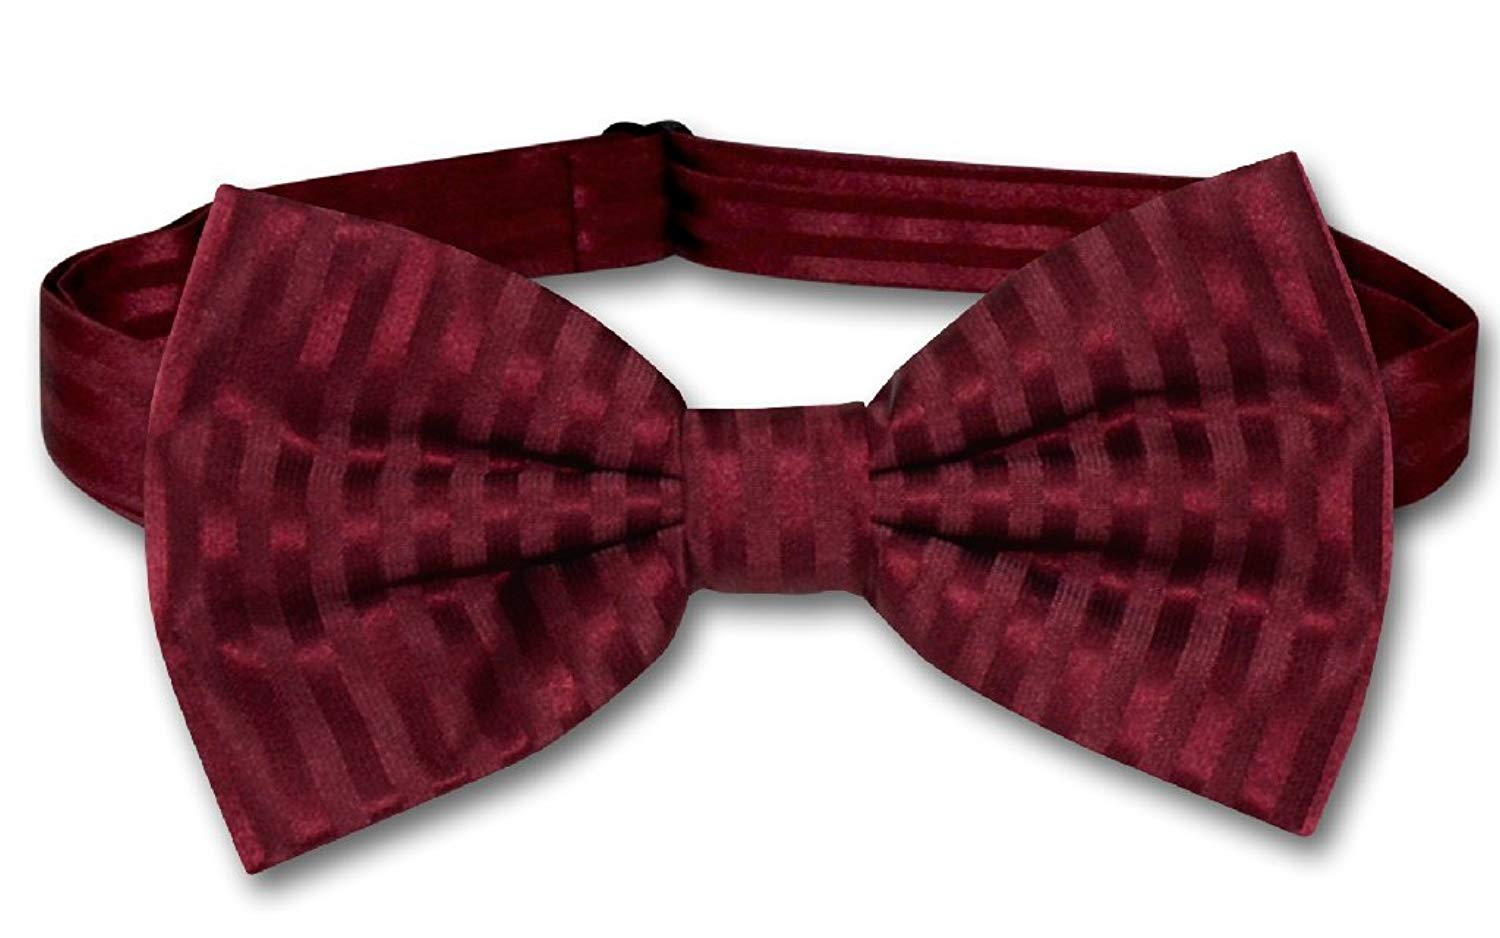 Vesuvio Napoli BOWTie BURGUNDY Color Striped Vertical Stripes Men's Bow Tie